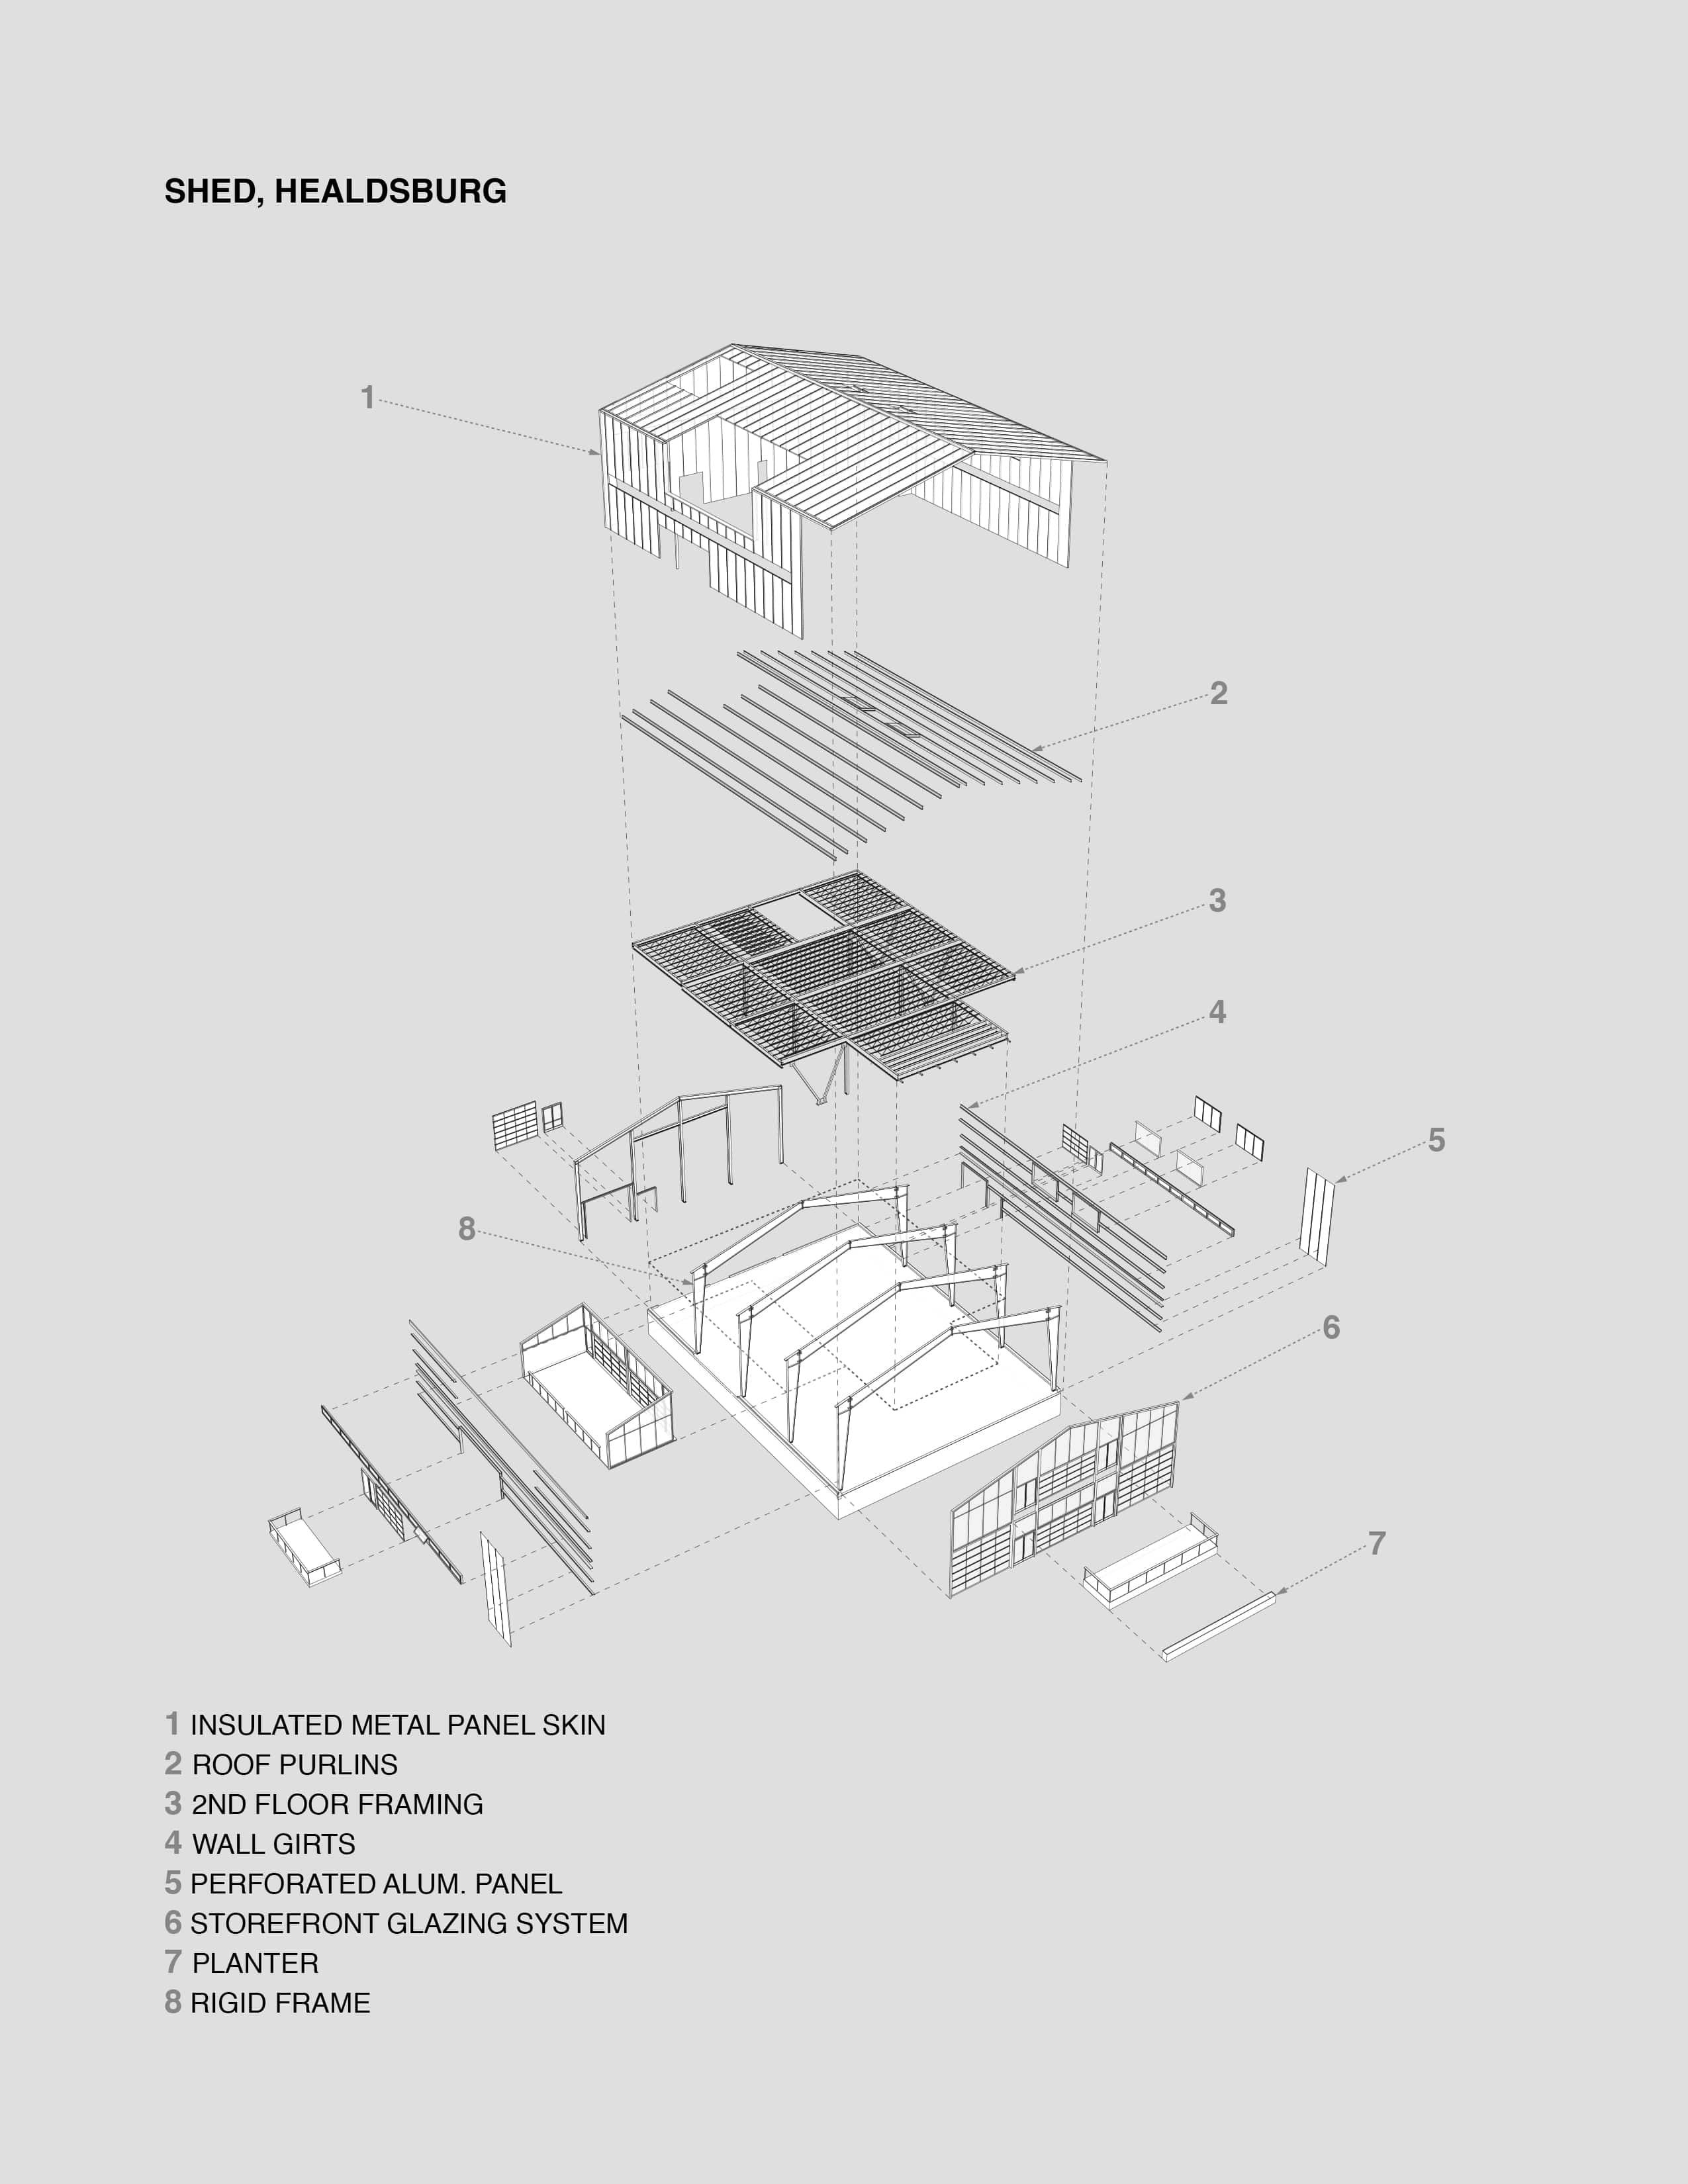 Healdsburg Shed Case Study Structure Preengineered Metal Building Diagram Systems System Architecture Diagram Diagram Architecture Healdsburg Shed